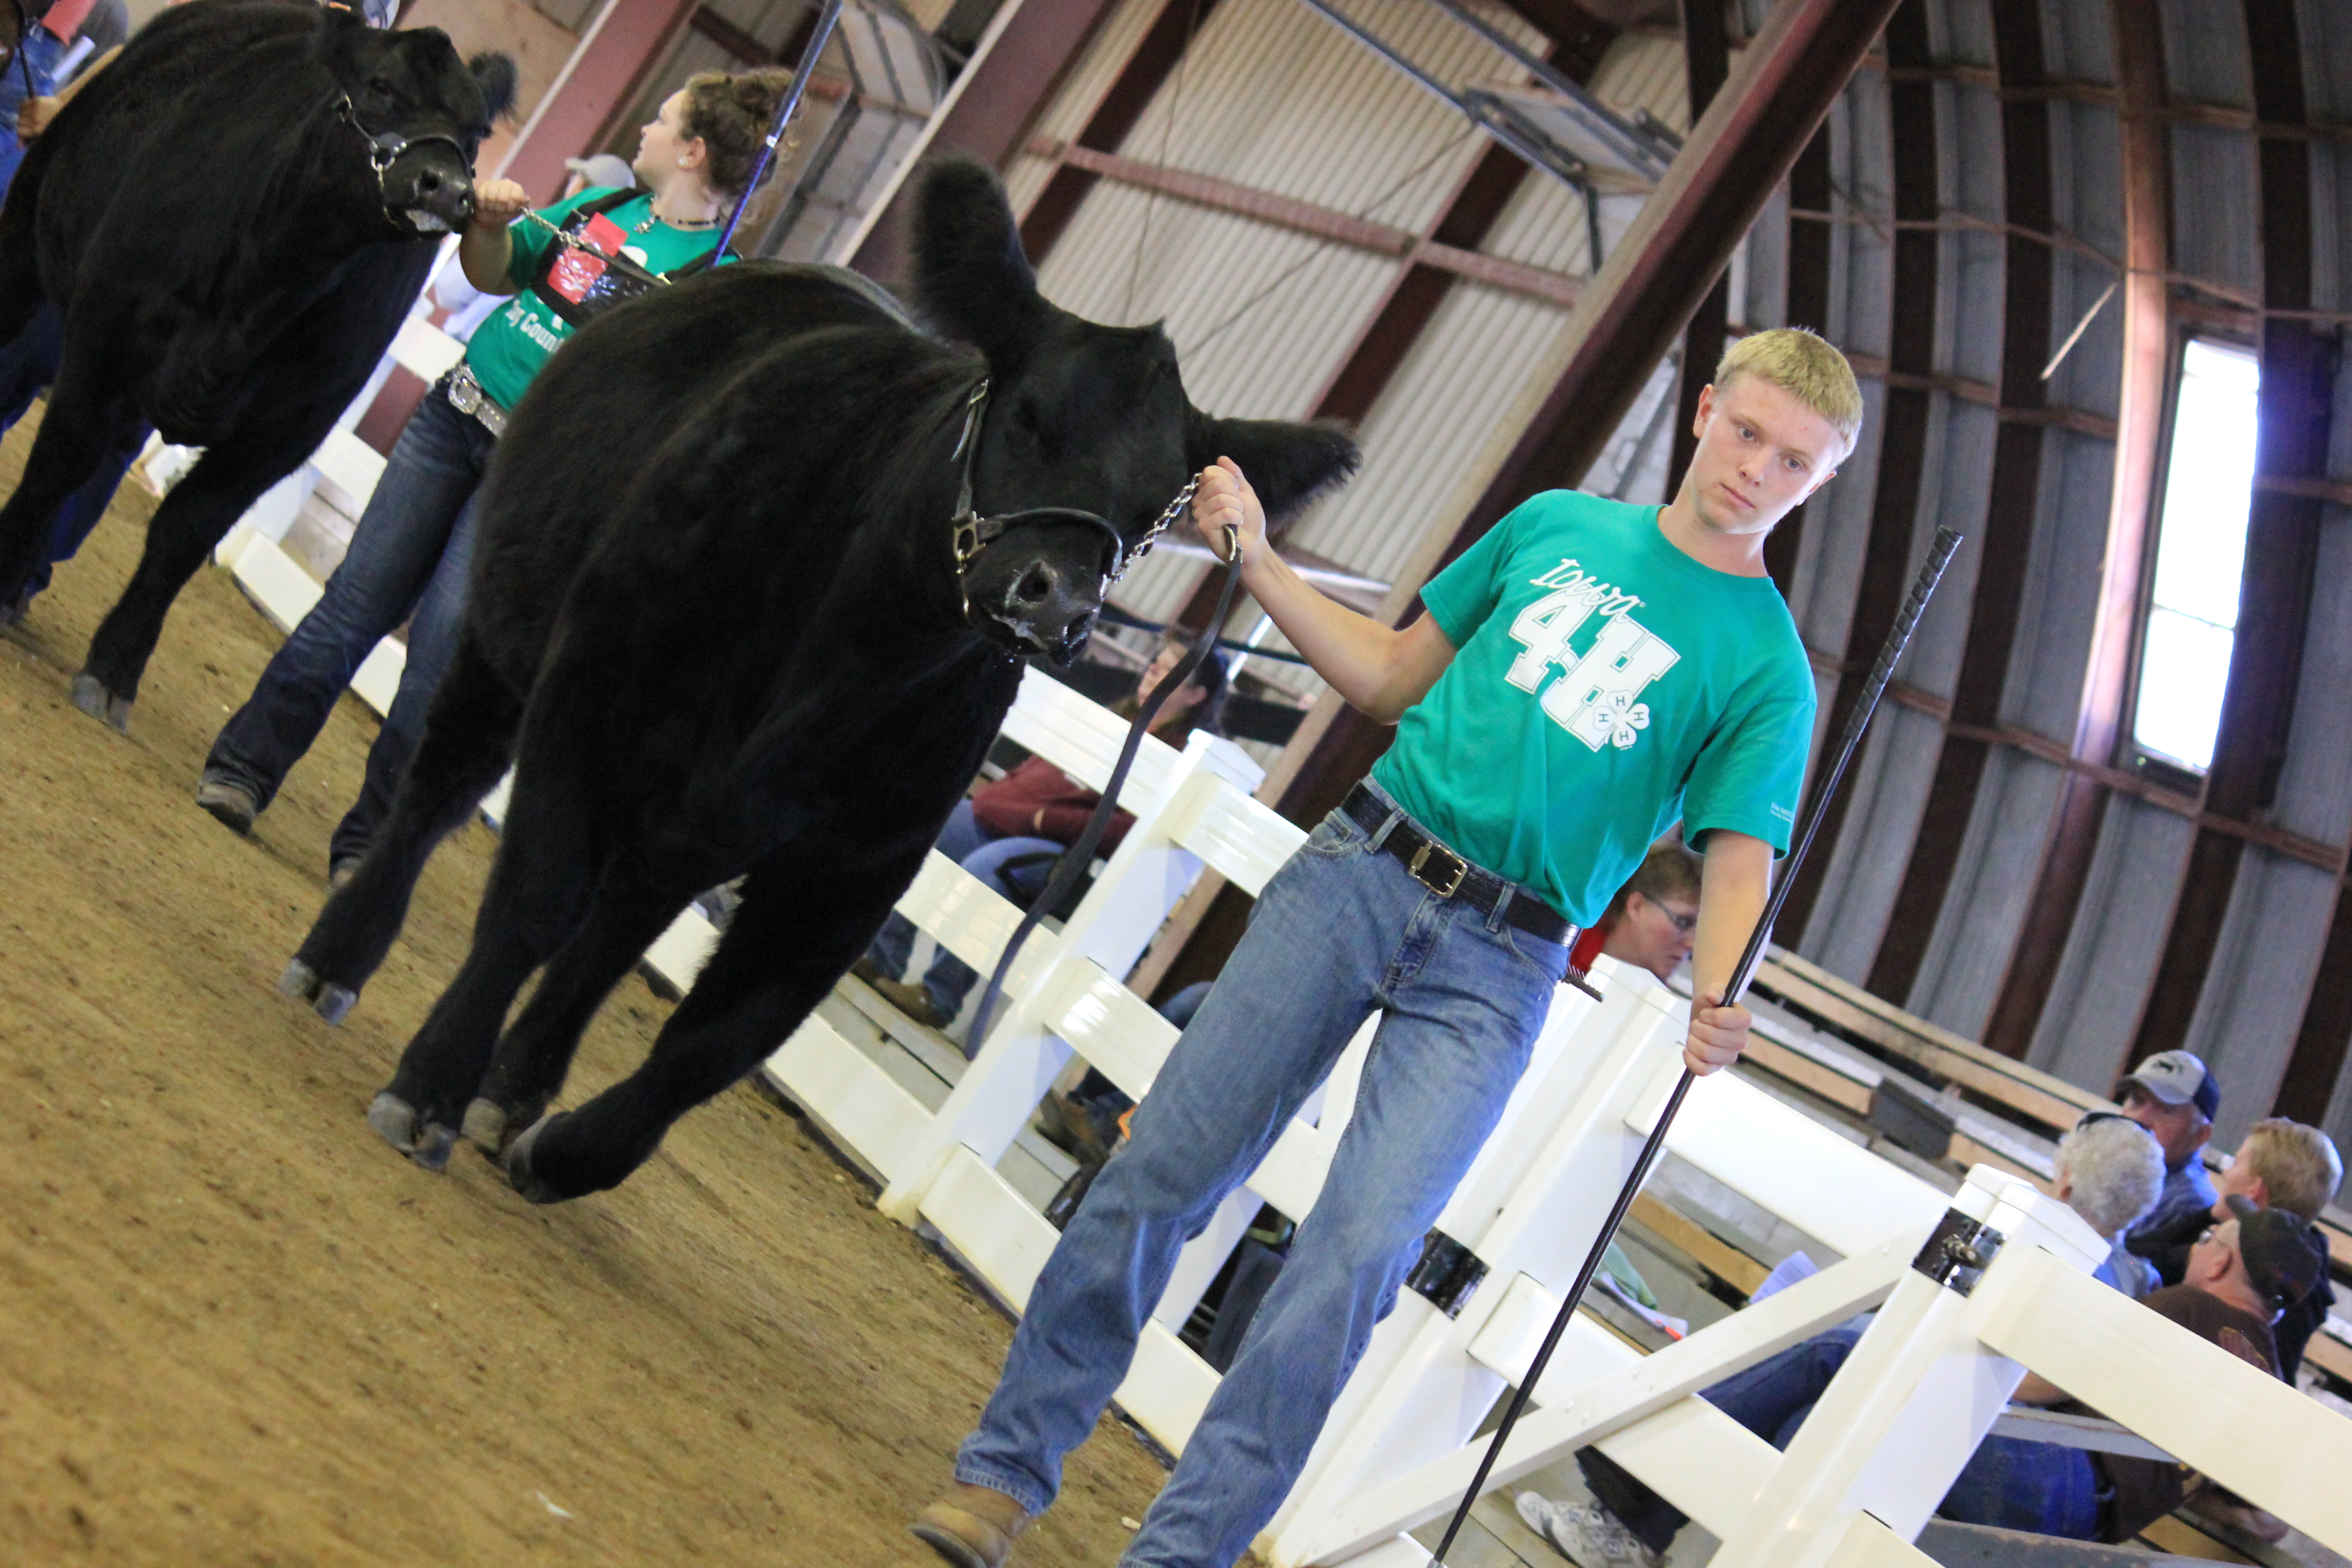 4-H at the Iowa State Fair | 4-H Youth Development